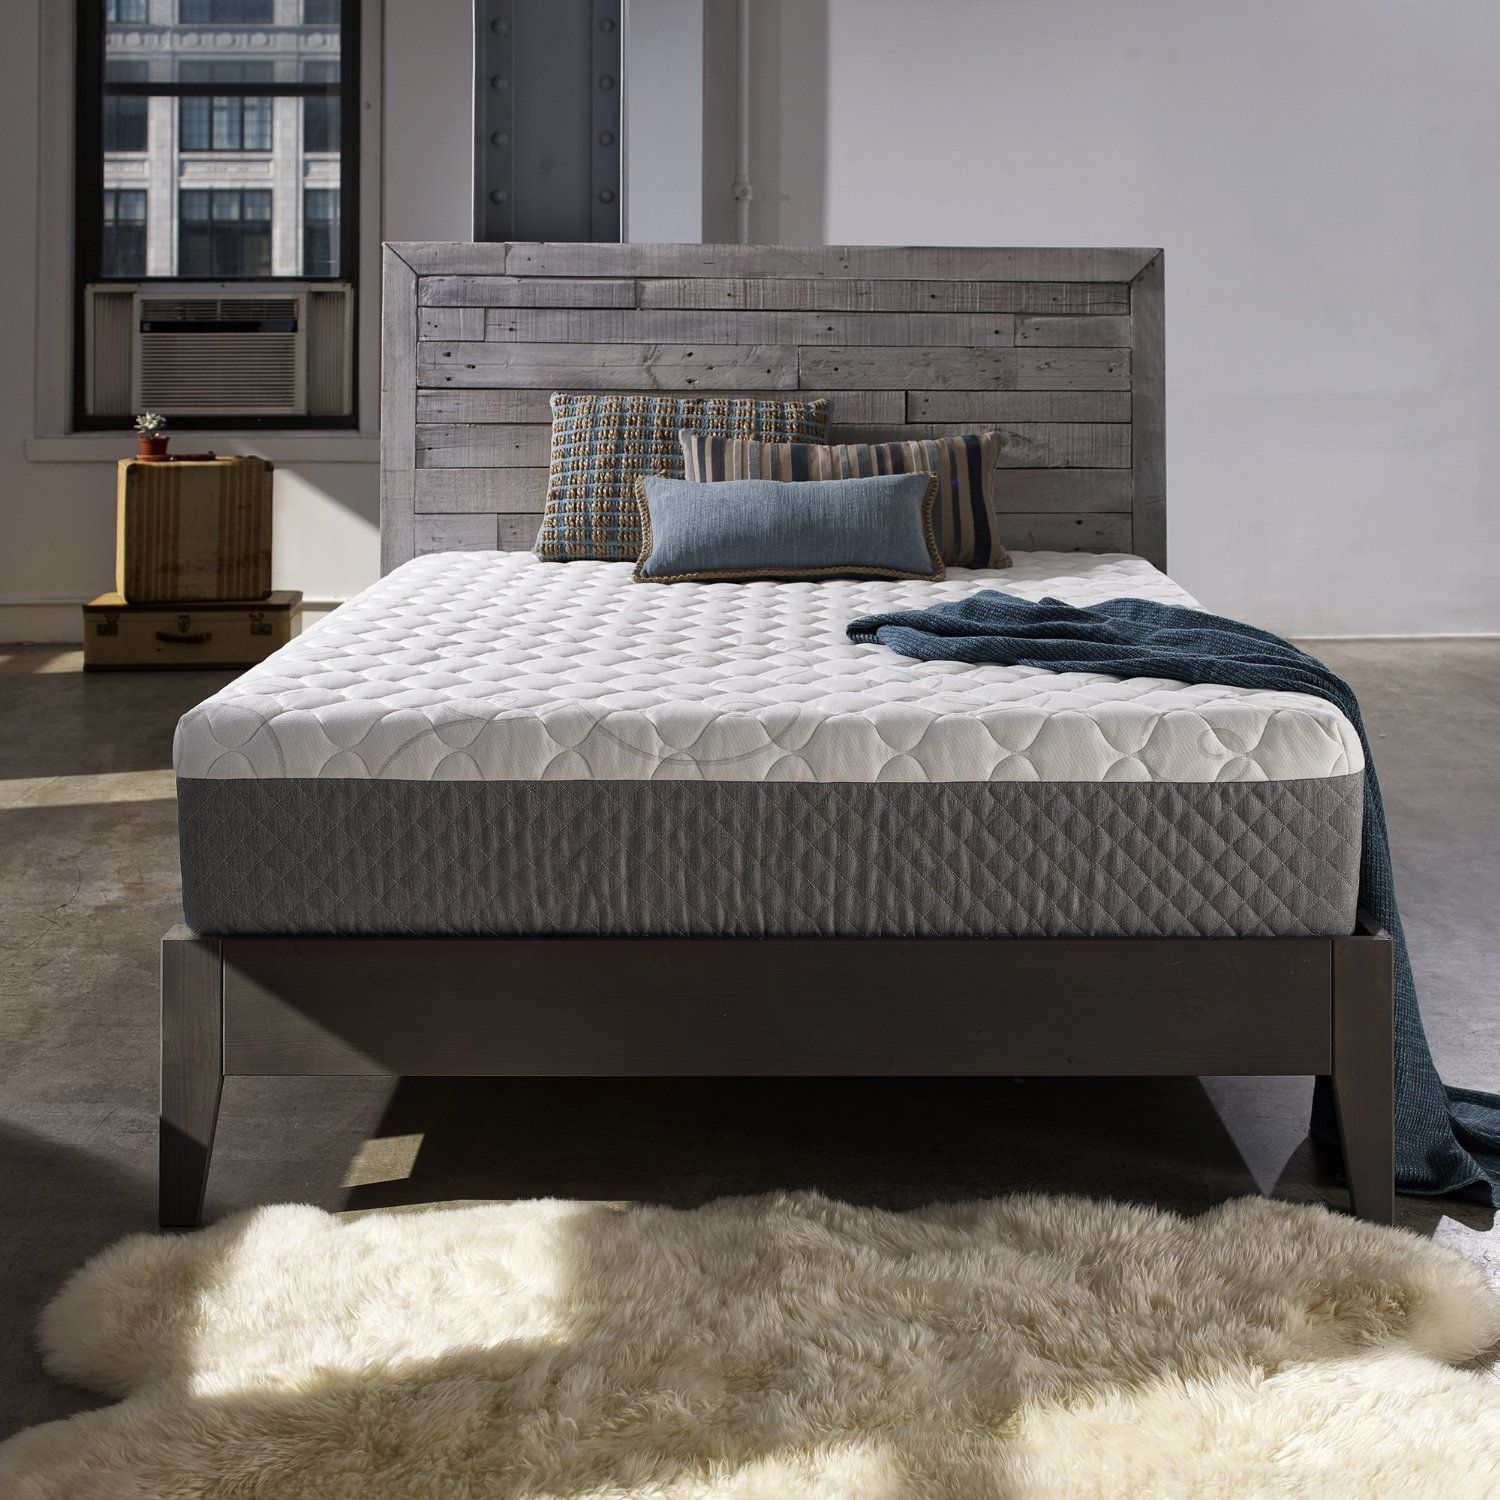 Top 10 Queen Pillow Top Mattress Reviews Best Models in